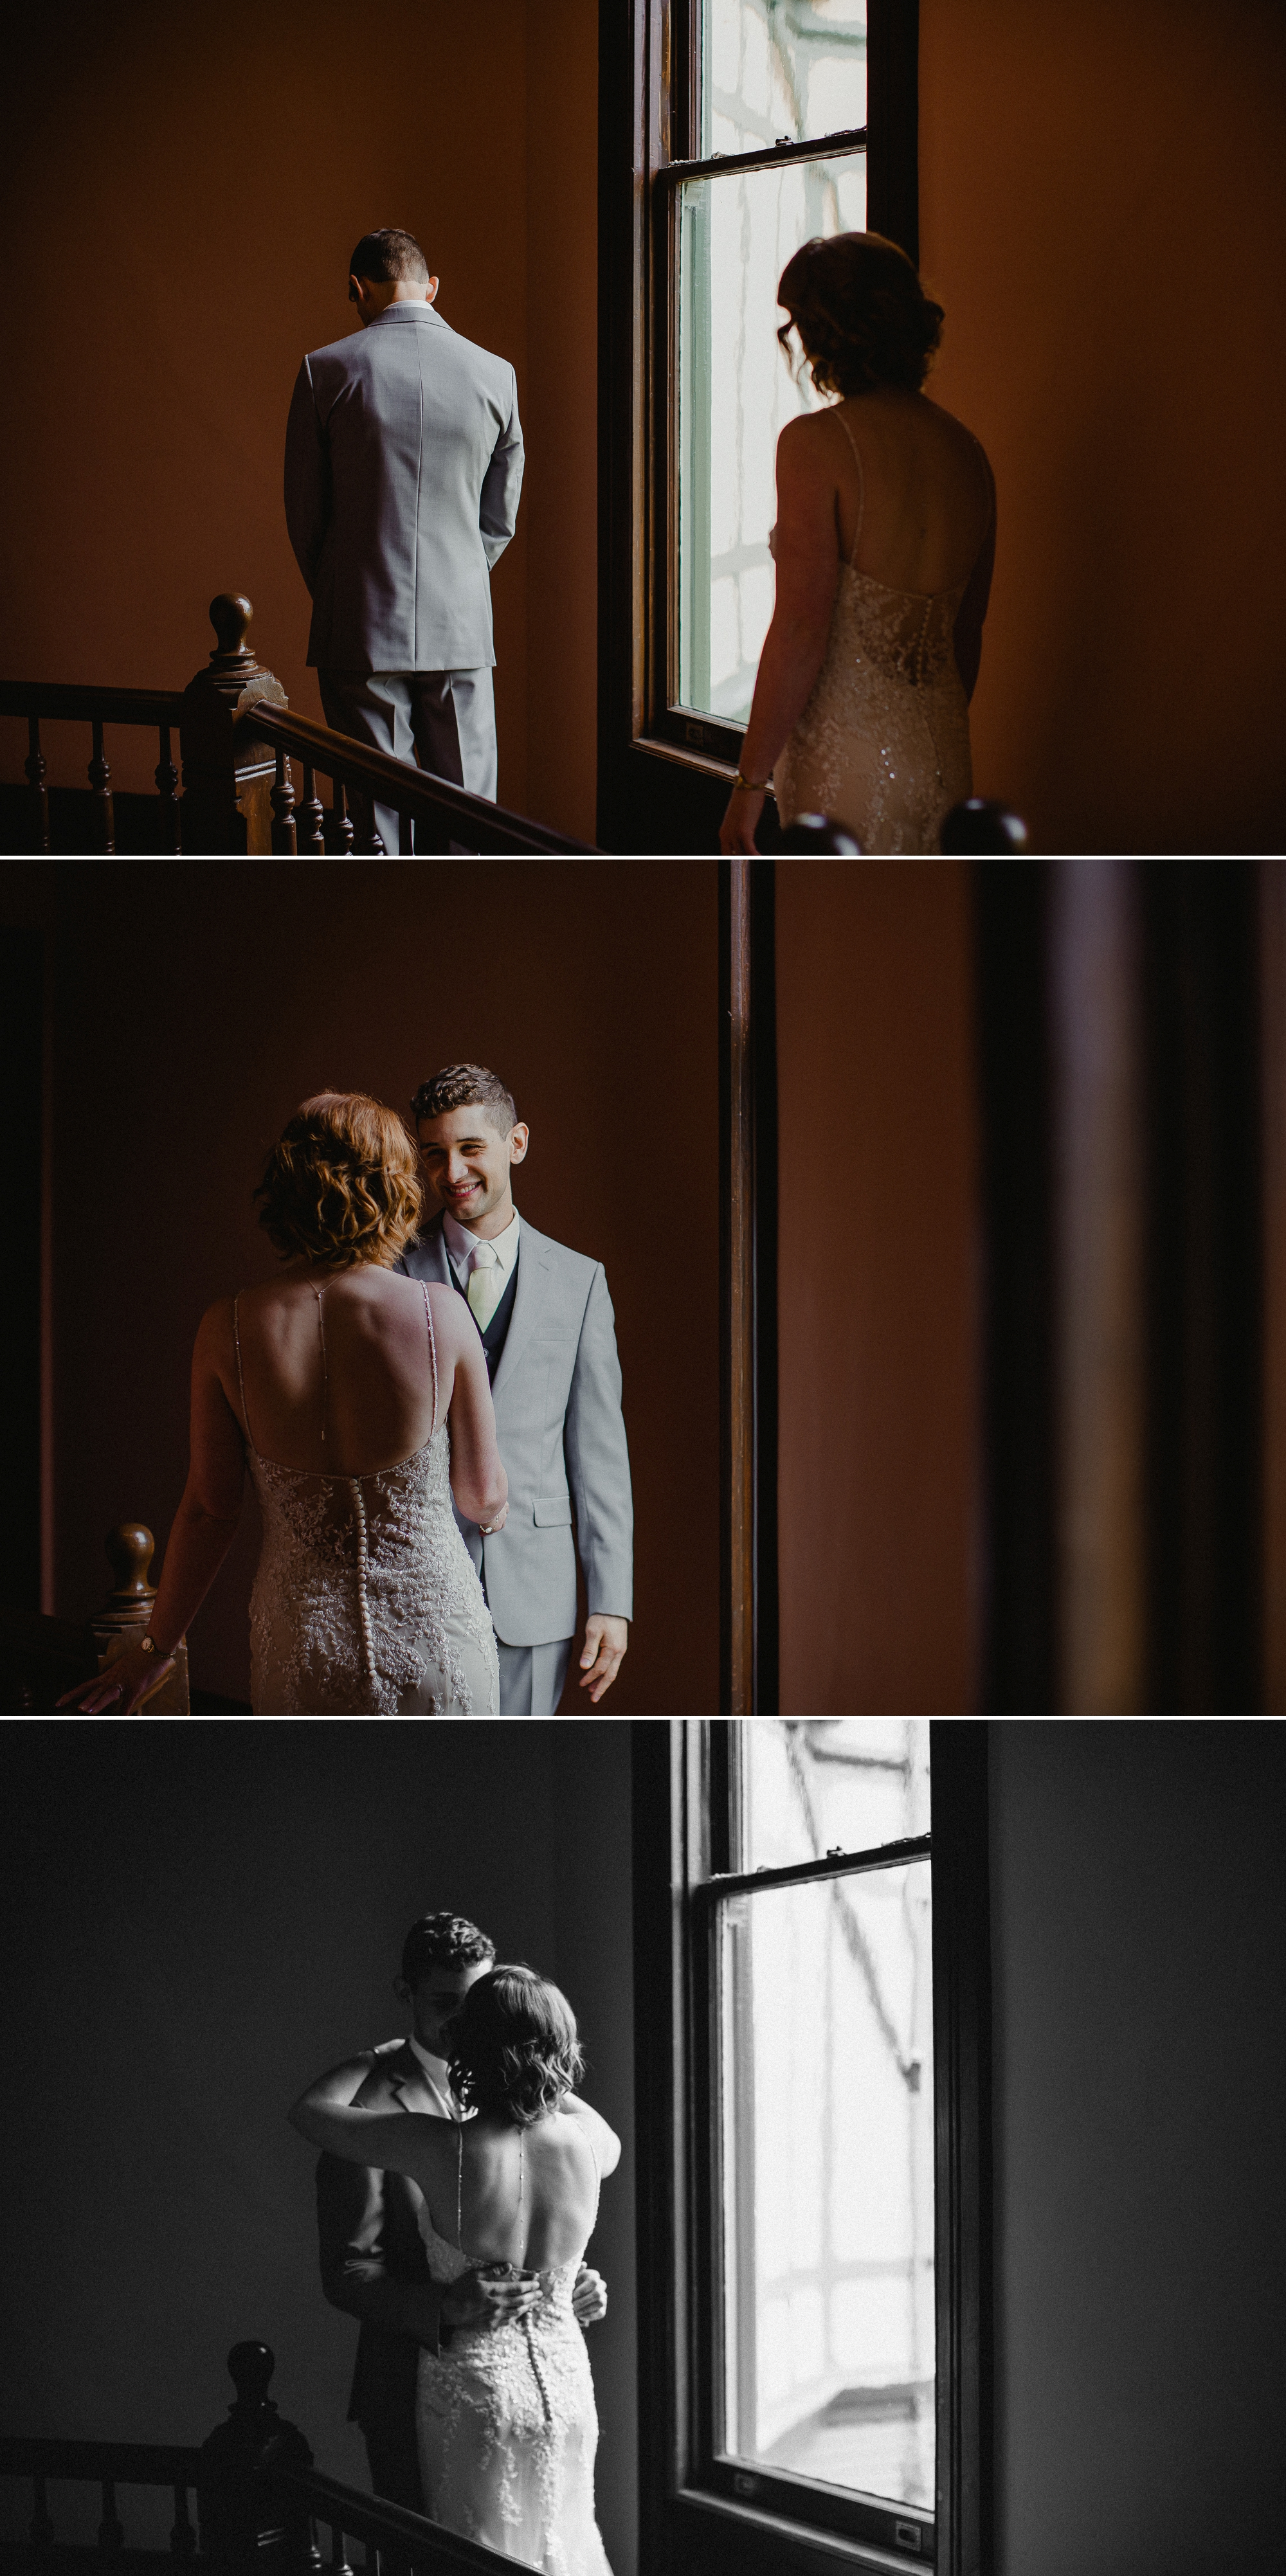 falkirk cultural center wedding 9.jpg